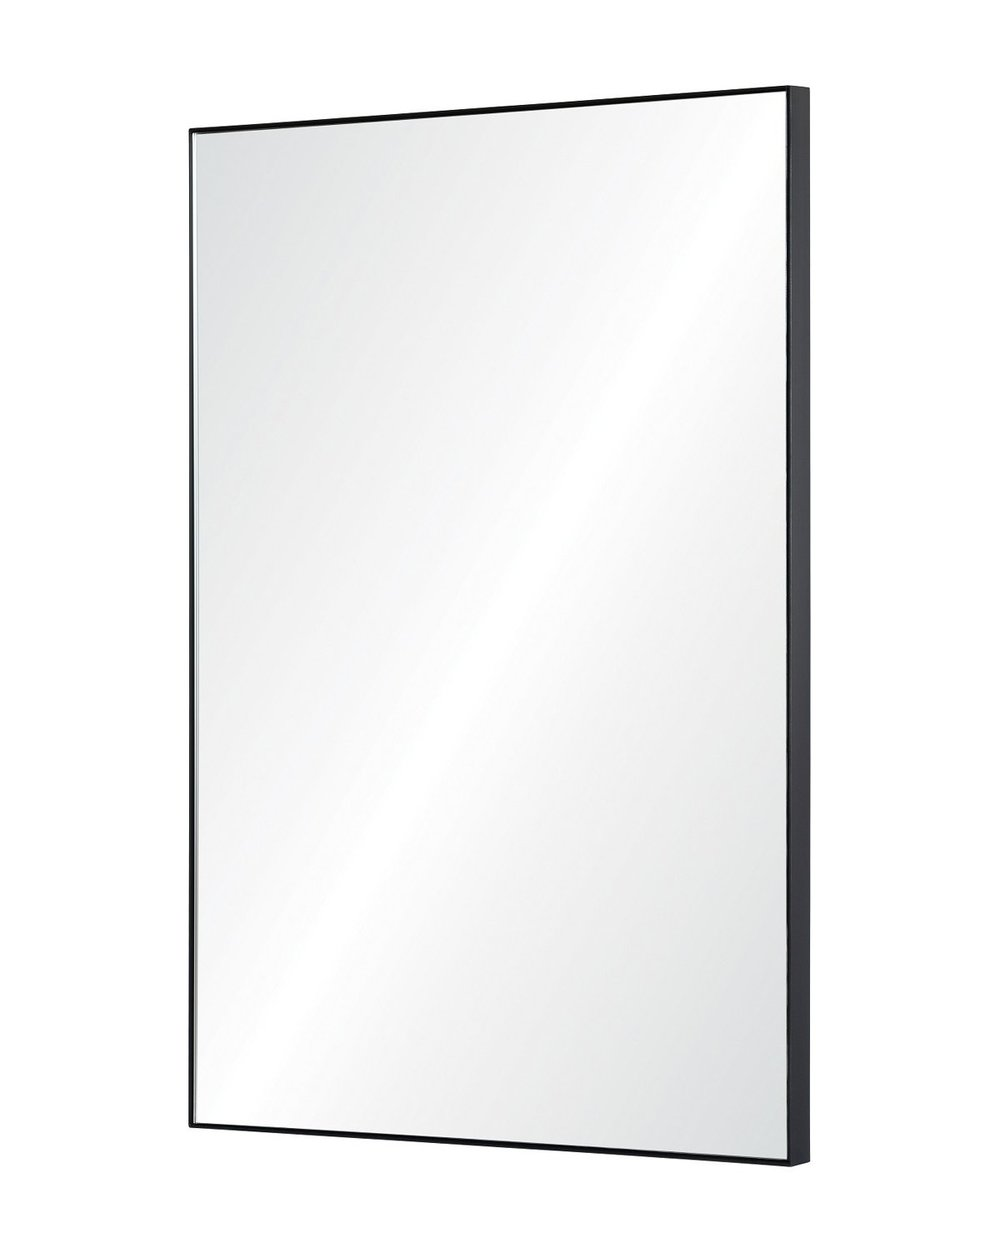 Knowles_Mirror_In_Black_Nickel_1_d979ba0f-f89c-47b3-8d7c-1e9c646cbaaf.jpg